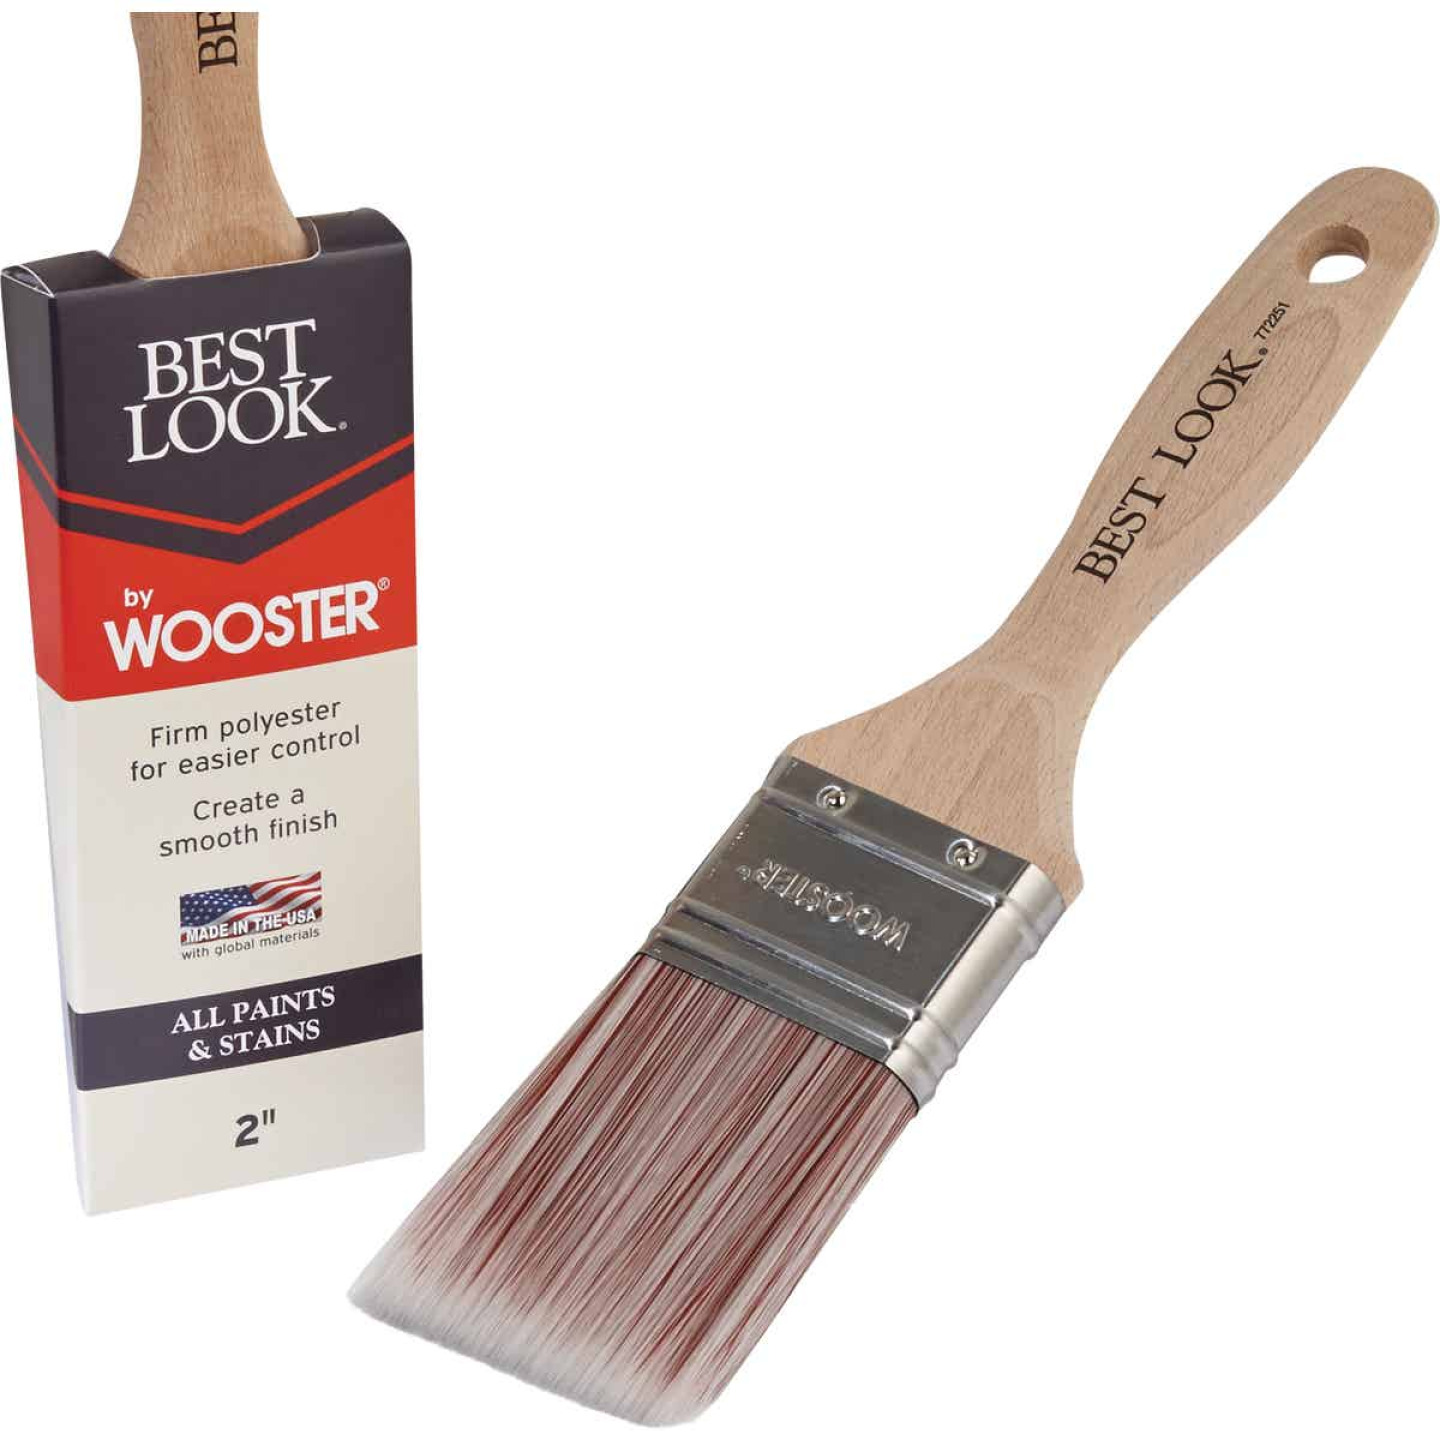 Best Look By Wooster 2 In. Flat Paint Brush Image 1